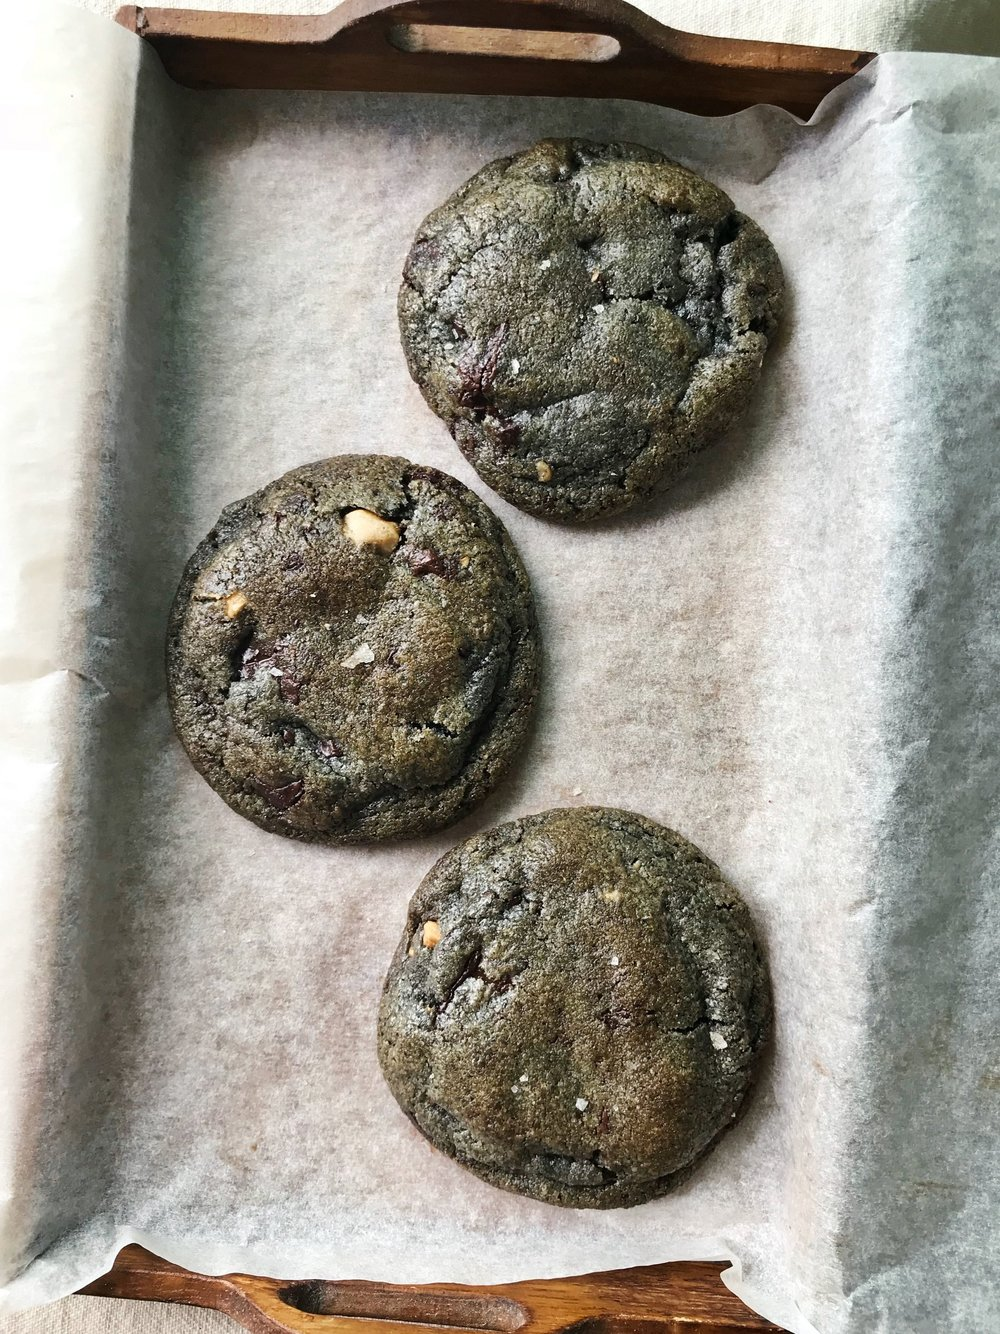 24hourkitchen-recipes-black-tahini-chocolate-chip-cookie-smoked-salt